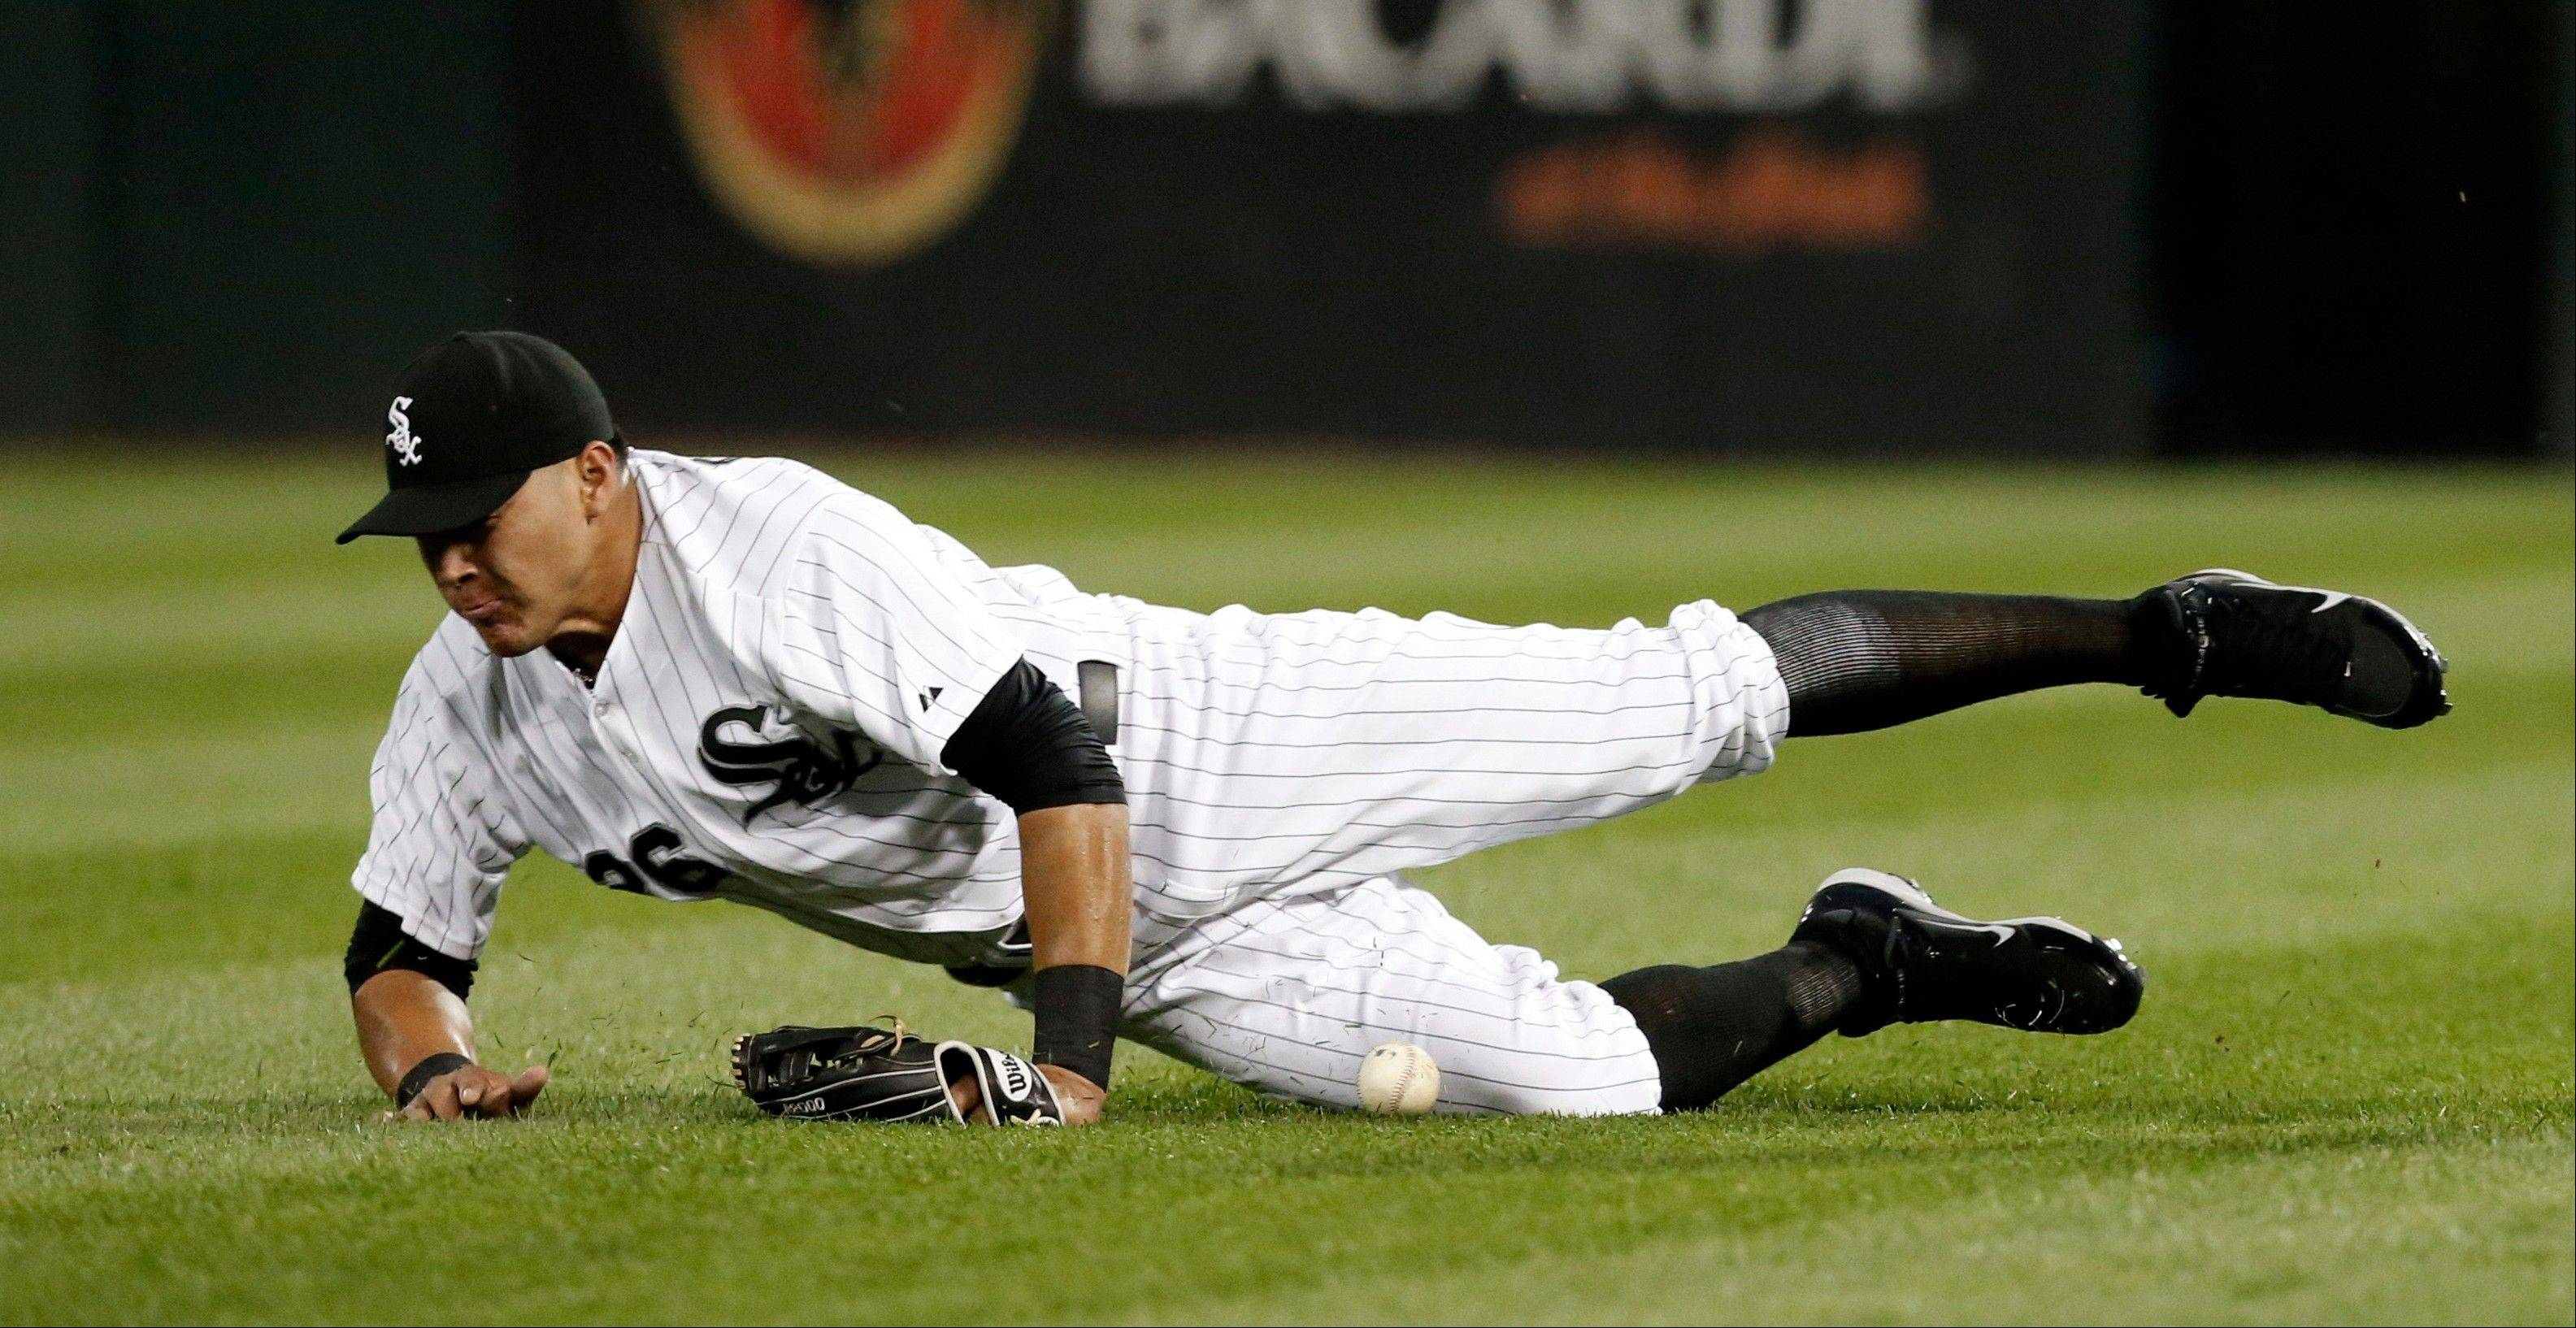 White Sox center fielder Avisail Garcia is unable to catch a fly ball hit by Houston Astros� Jonathan Villar during the third inning of a baseball game Tuesday, Aug. 27, 2013, in Chicago.